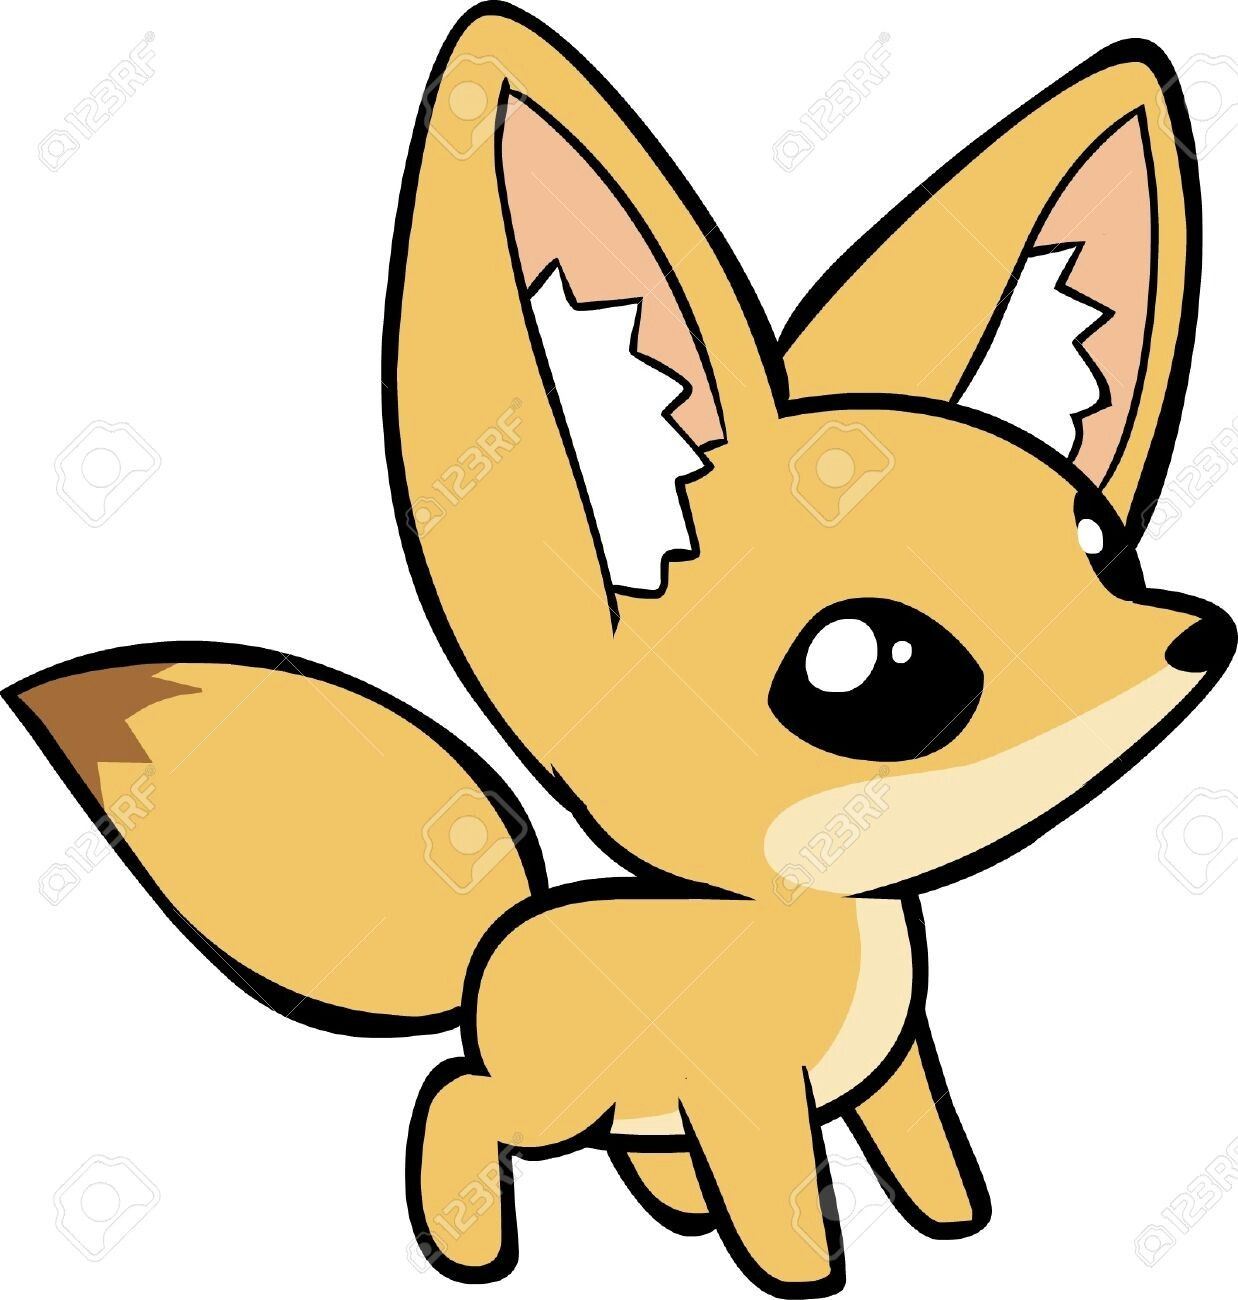 1238x1300 fennec fox animals fox drawing, fennec fox, fox images